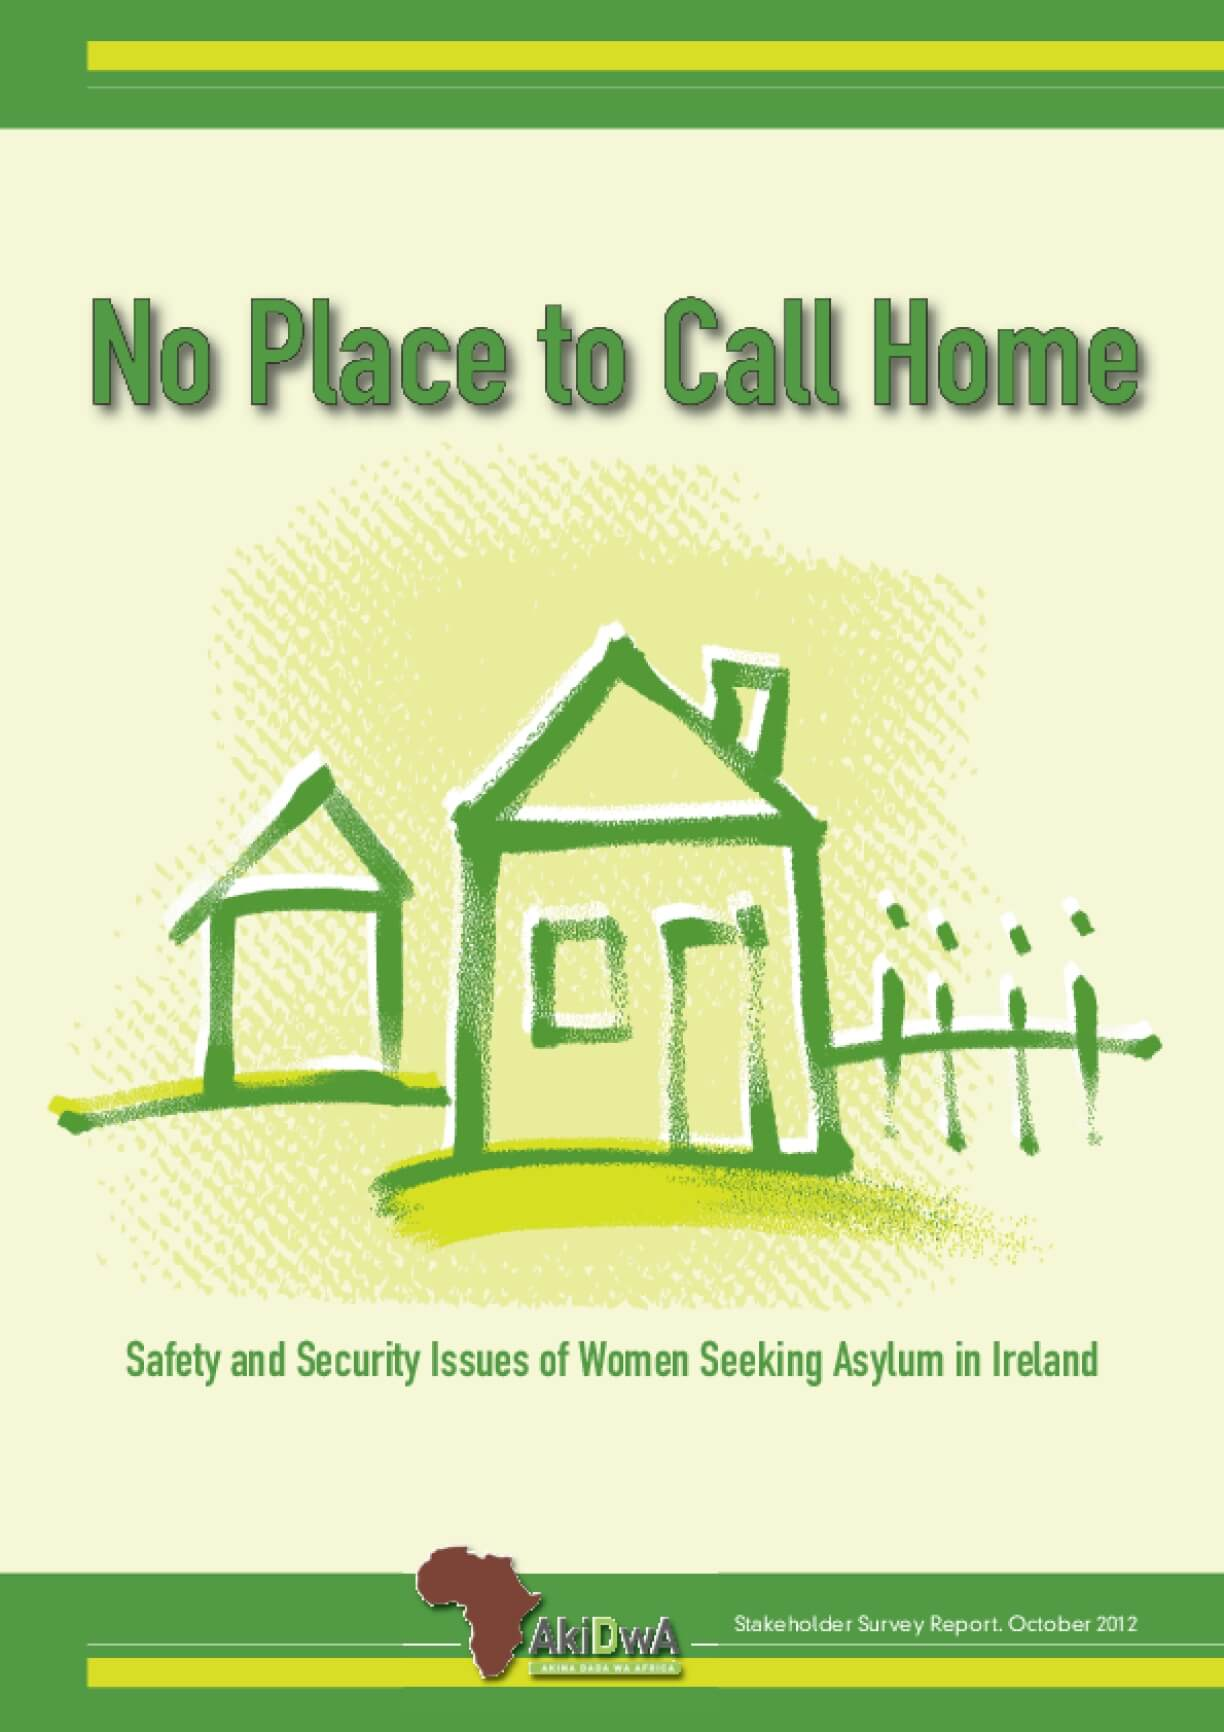 No Place to Call Home: Safety and Security Issues of Women Seeking Asylum in Ireland